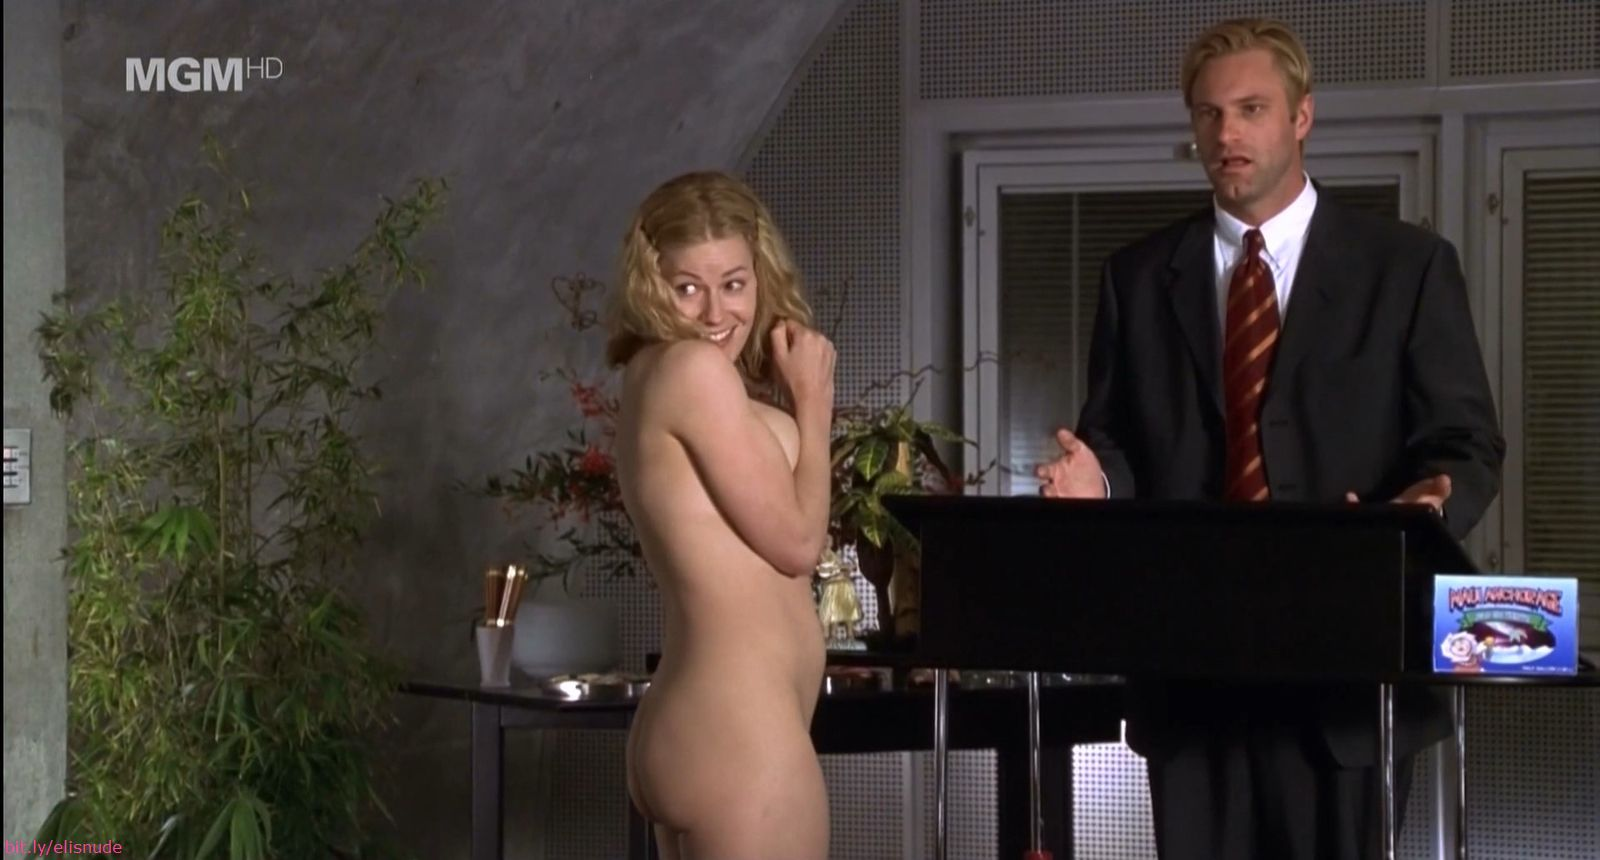 Kristen stewart hot compilation welcome to the rileys hd - 3 part 1